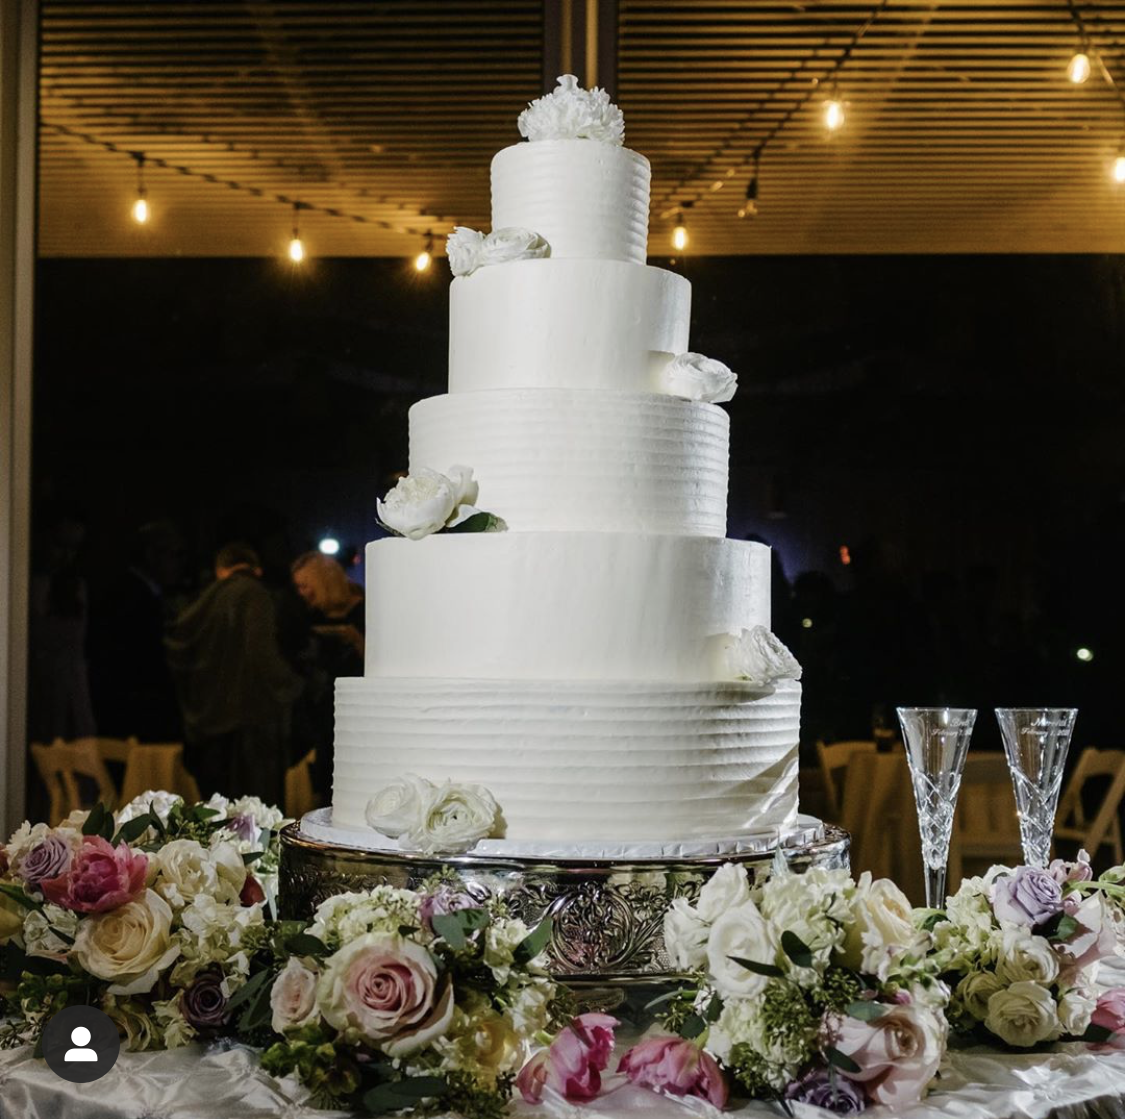 Wedding cake 5.png